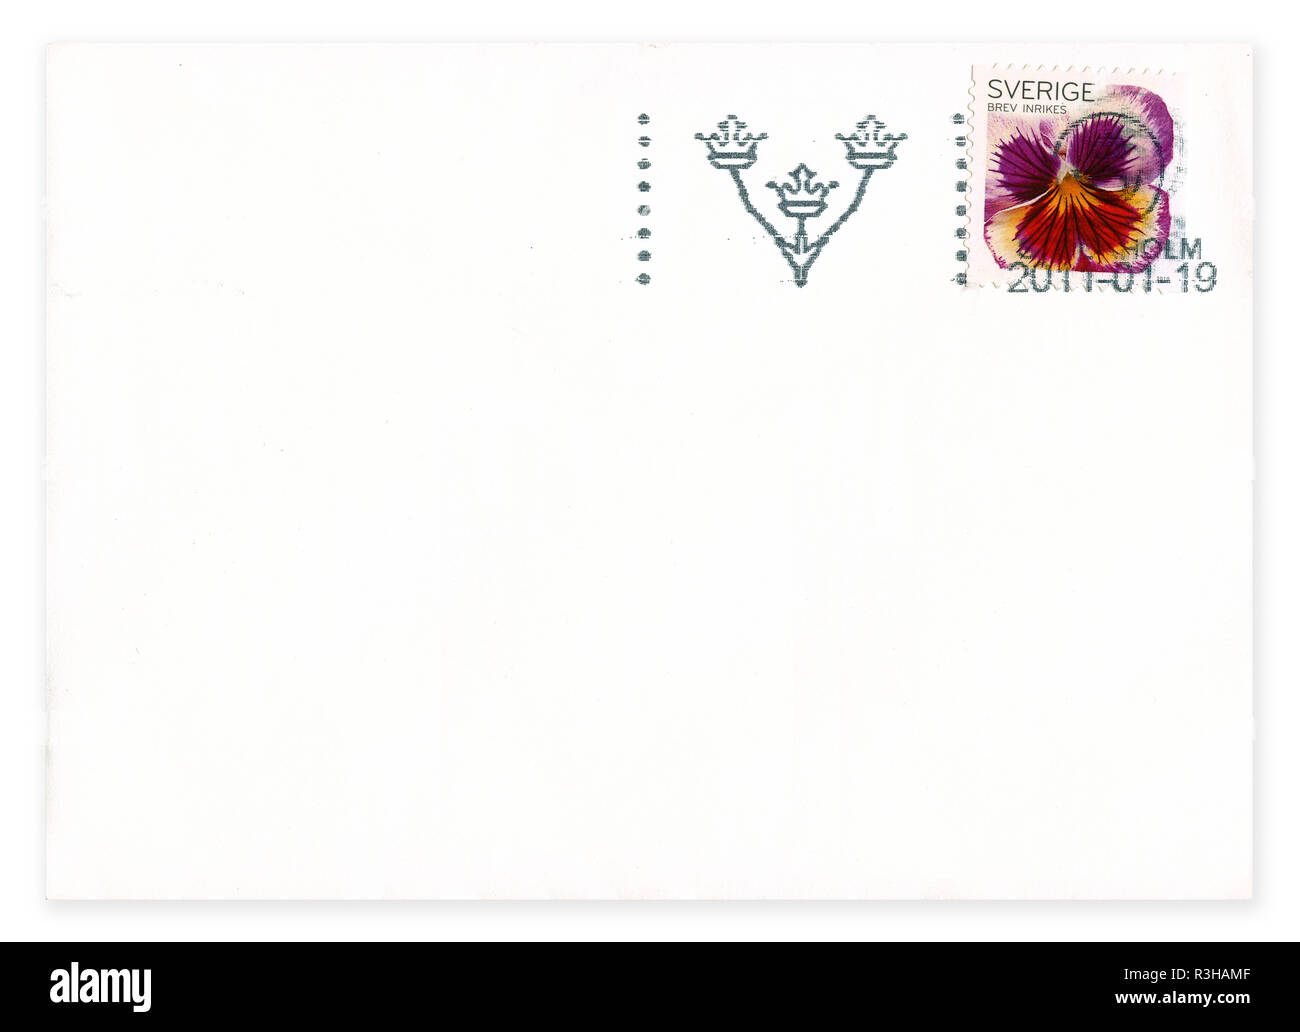 Postage stamp from Sweden in the Flora (Flowers - General) series issued in 2010 - Stock Image